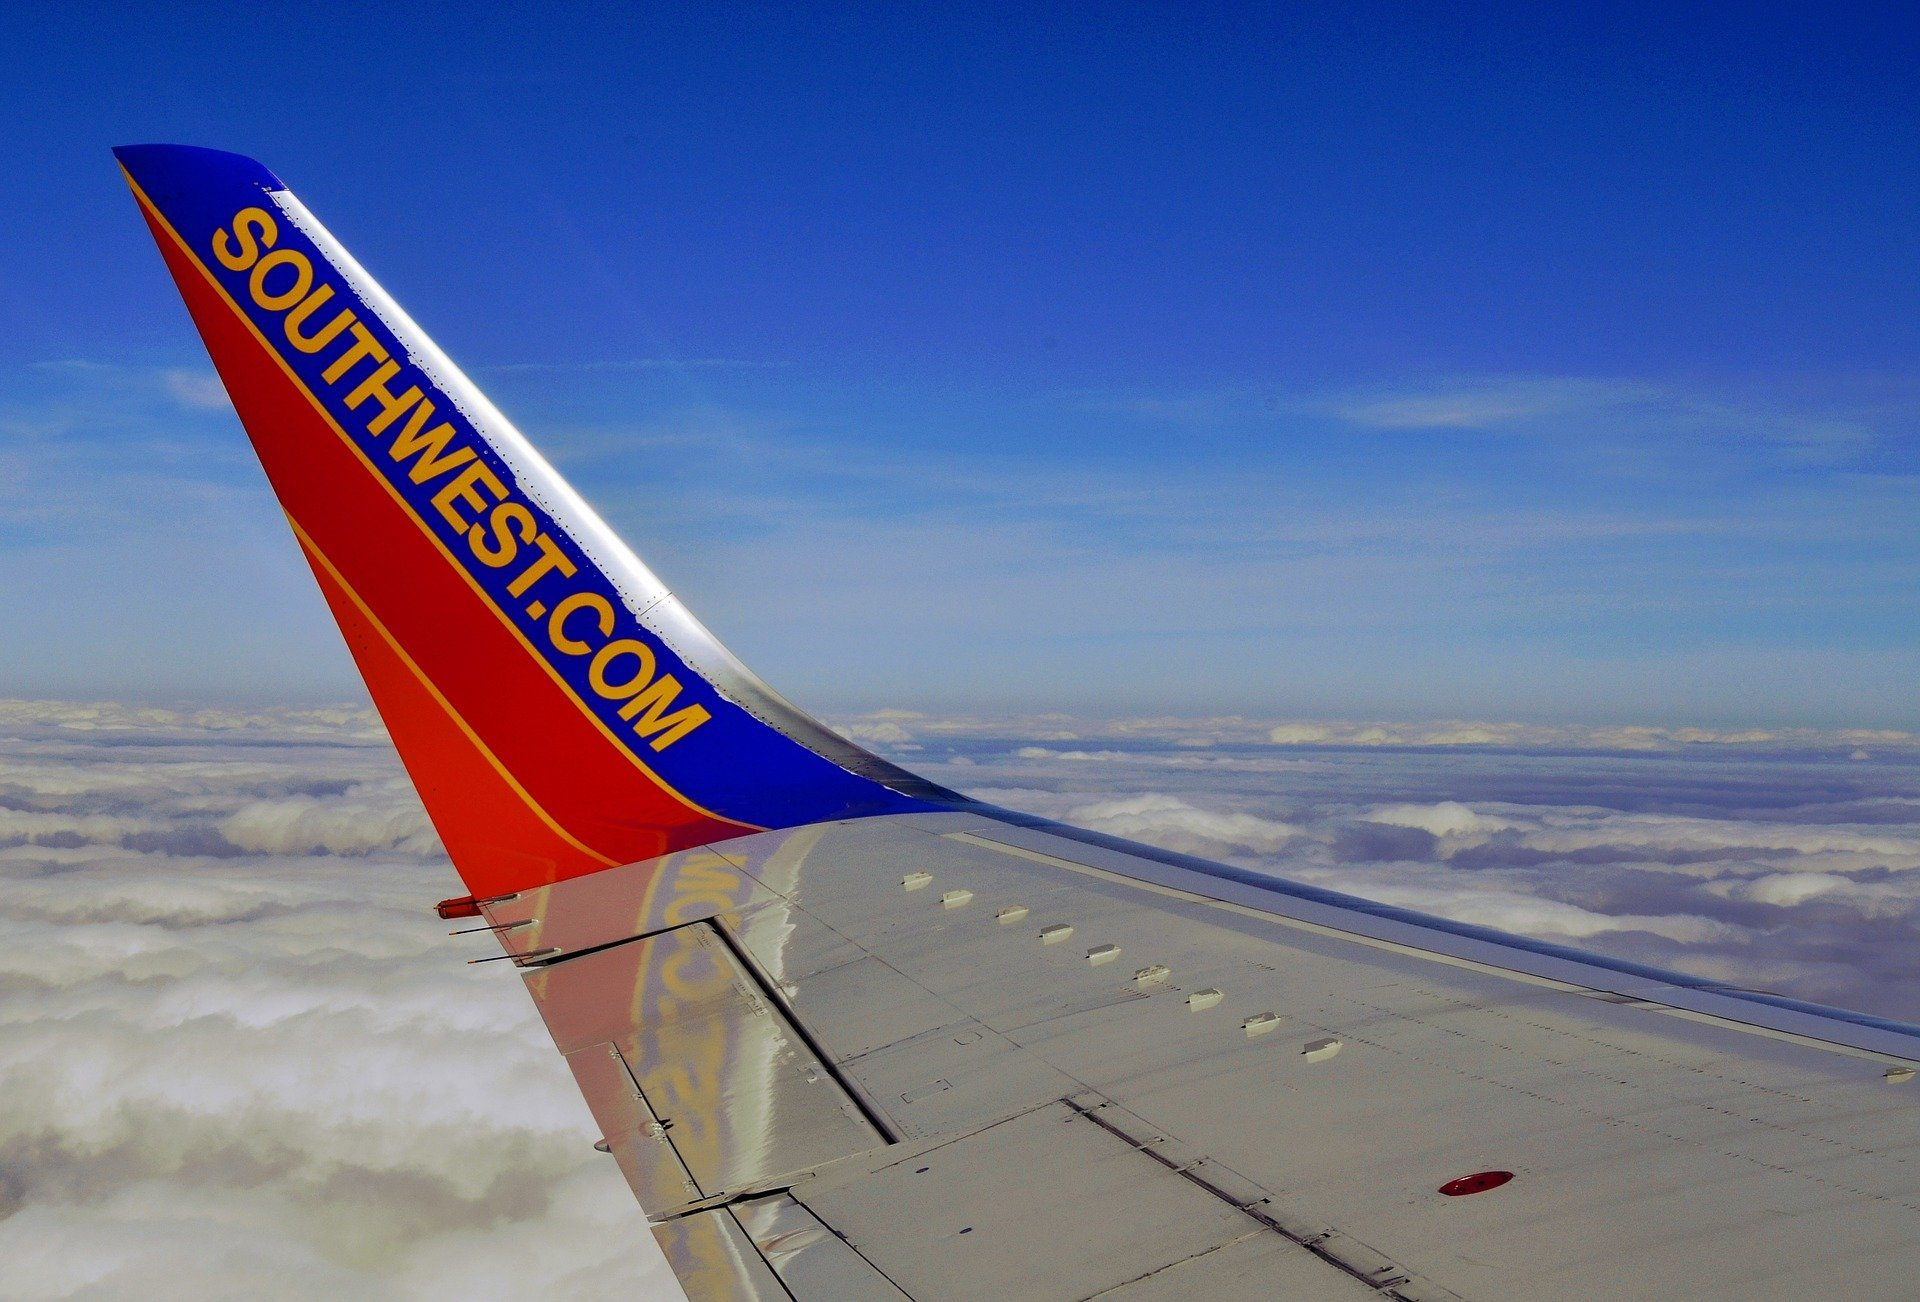 Southwest Pilot Goes Balls-Out! – Is Accused of Flashing Genitals Mid Flight